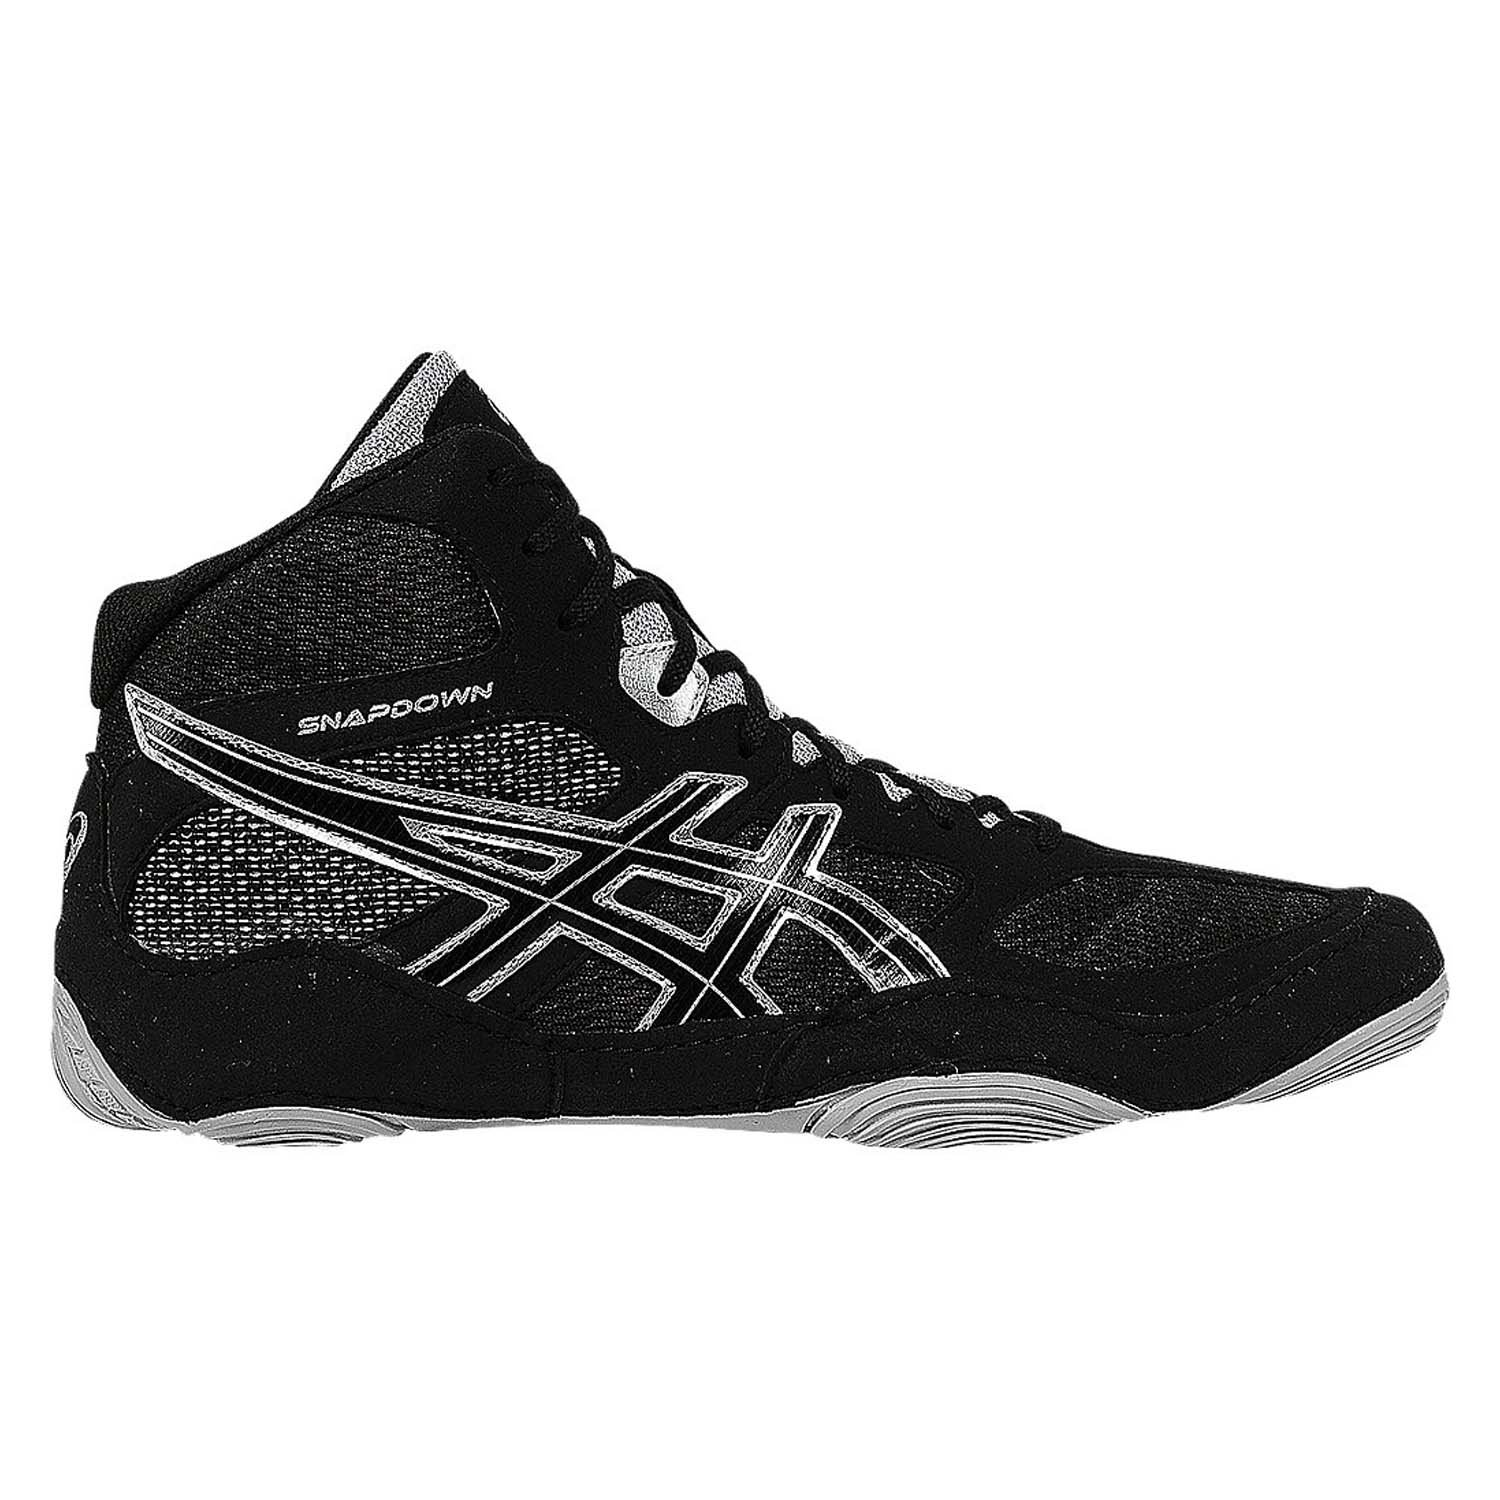 ASICS Men's Snapdown Wrestling Shoe, Black/Silver, 12 M US by ASICS